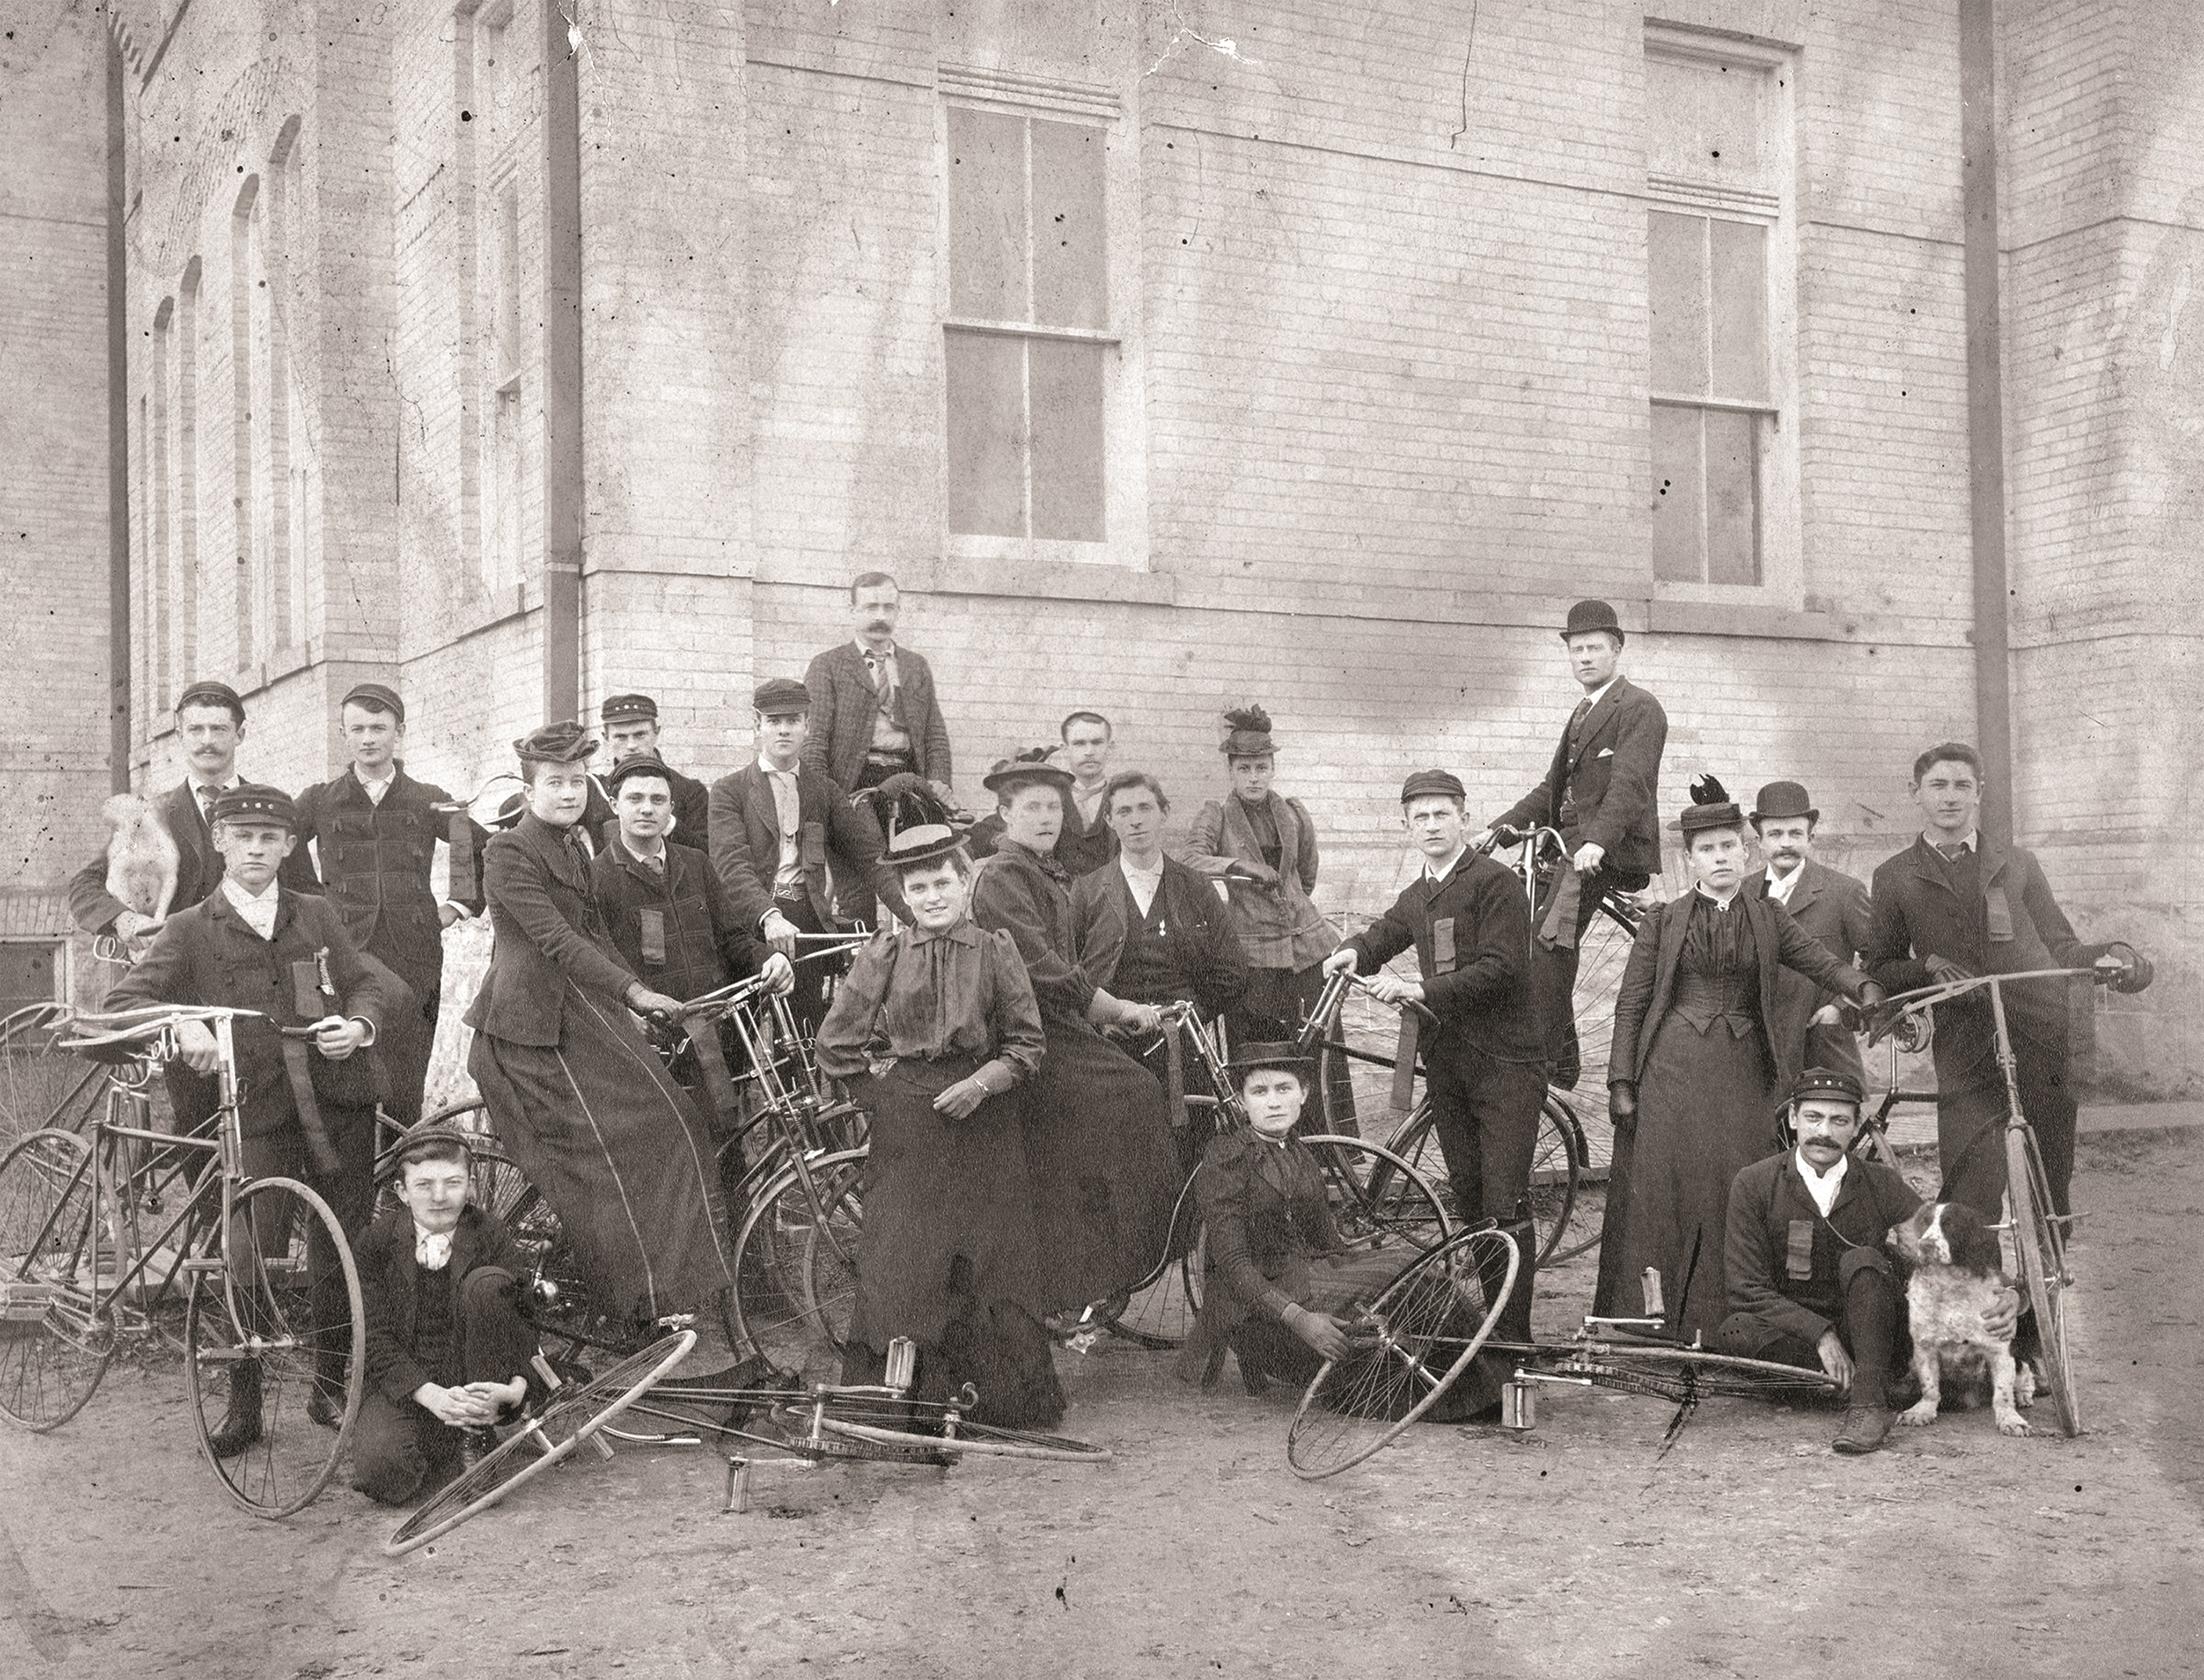 A black and white photograph of a group of men and women in late 19th century clothes posing with their bicycles in front of a large brick building.